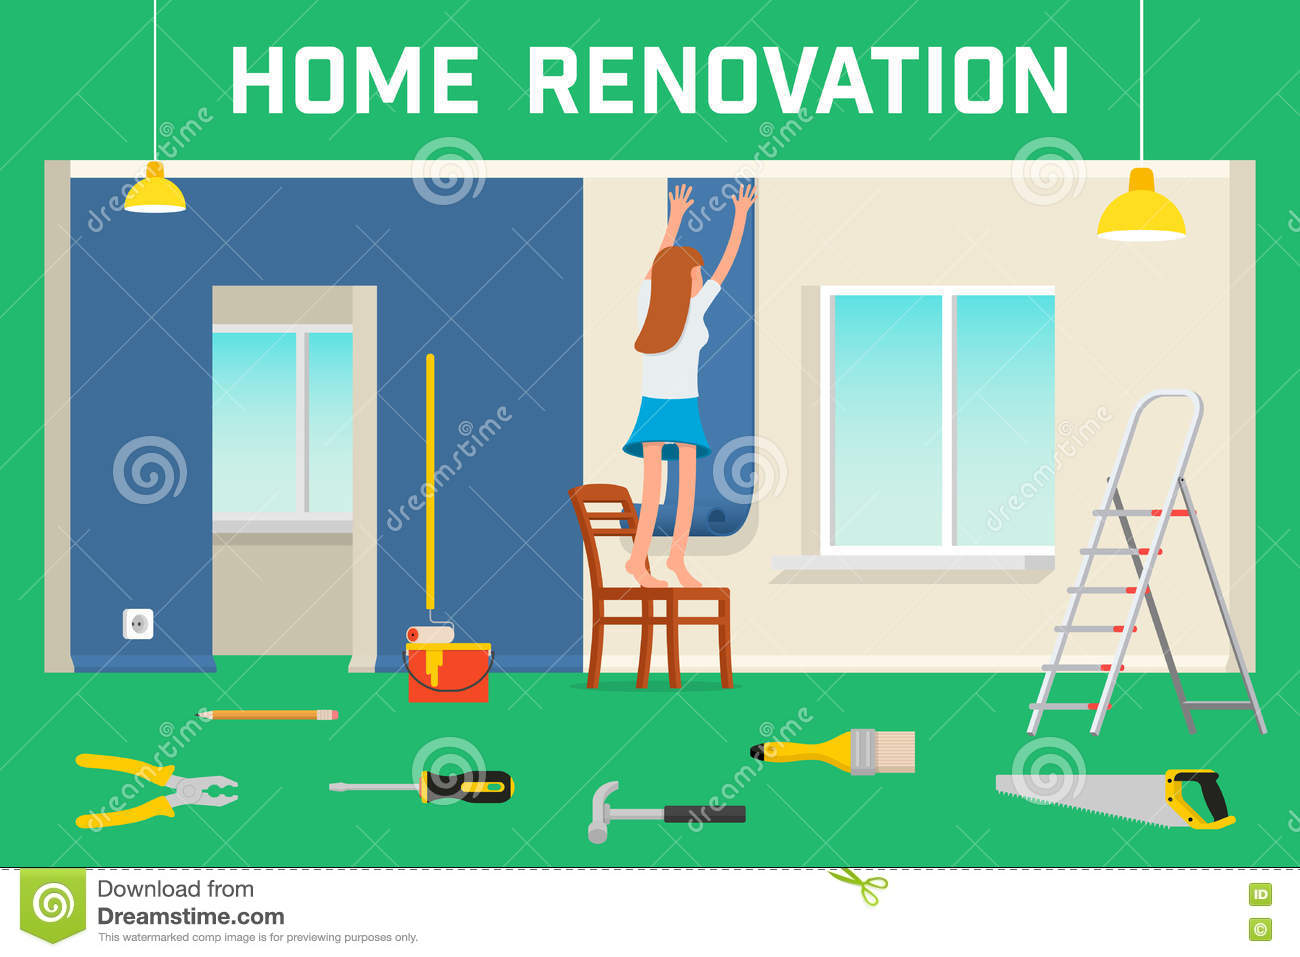 Wallpaper home renovation wallpaper home for Wallpaper home renovation